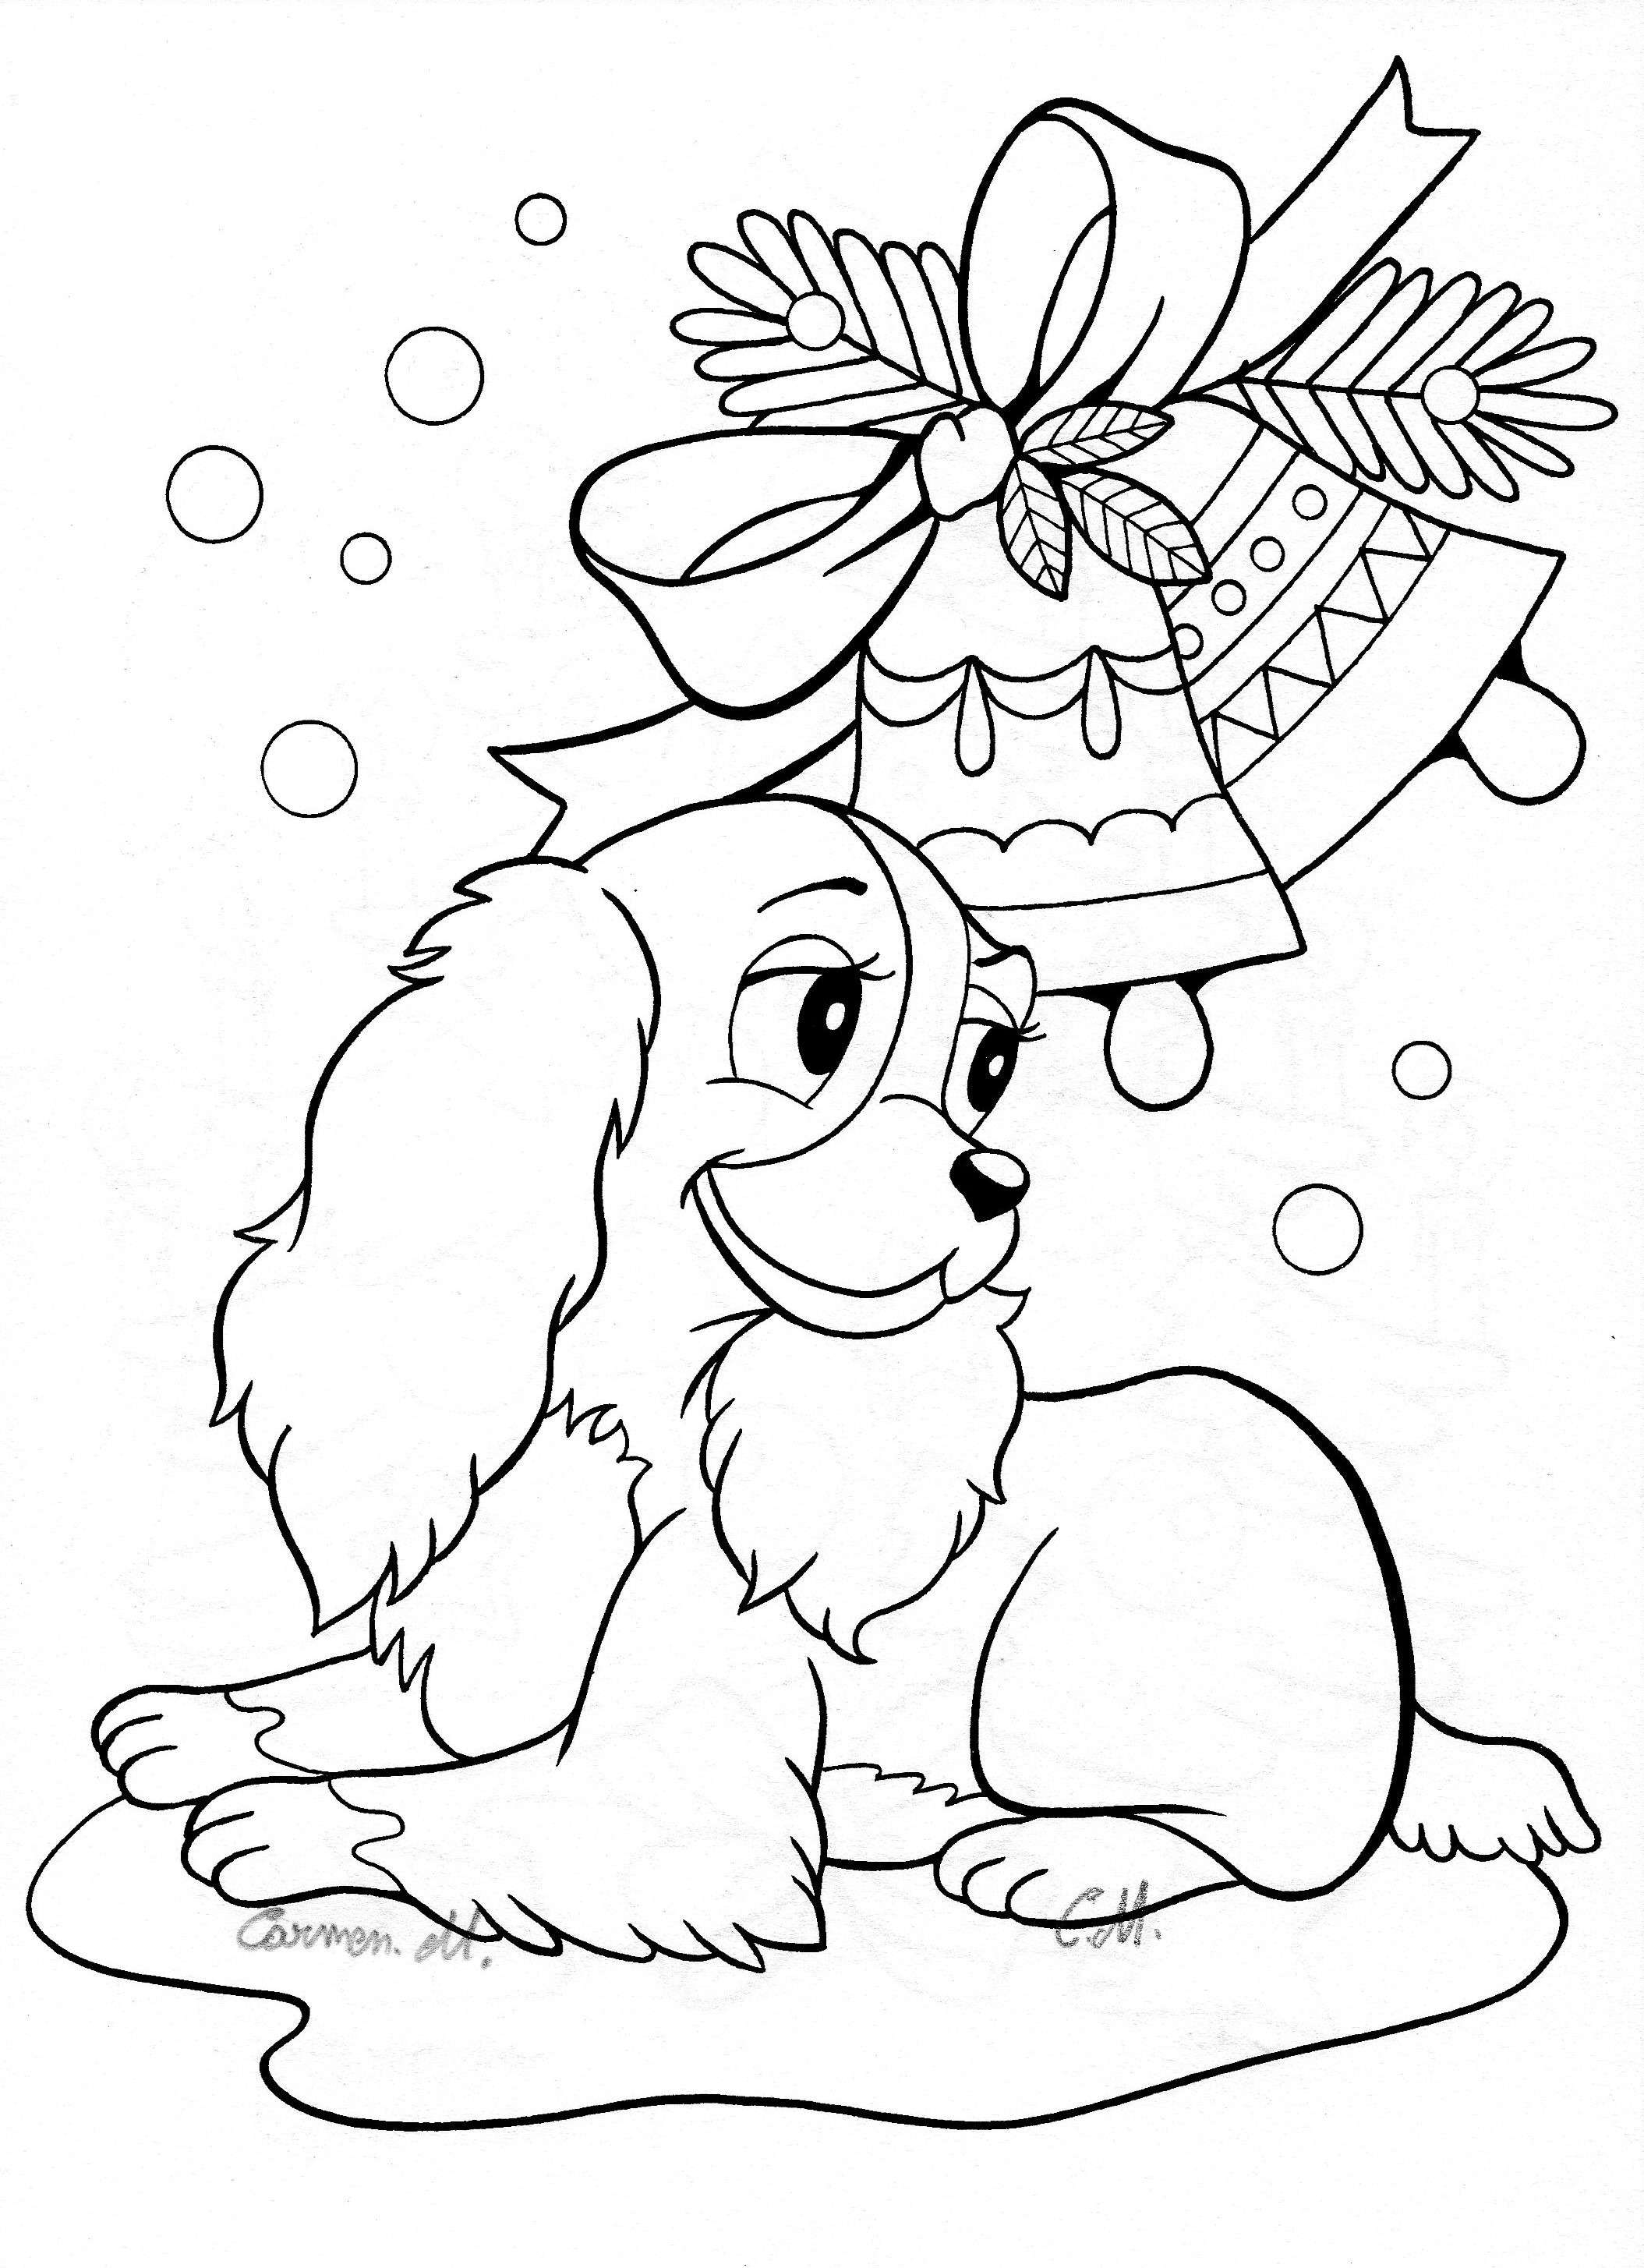 Coloring Pages Lego  Collection 15d - Free For kids